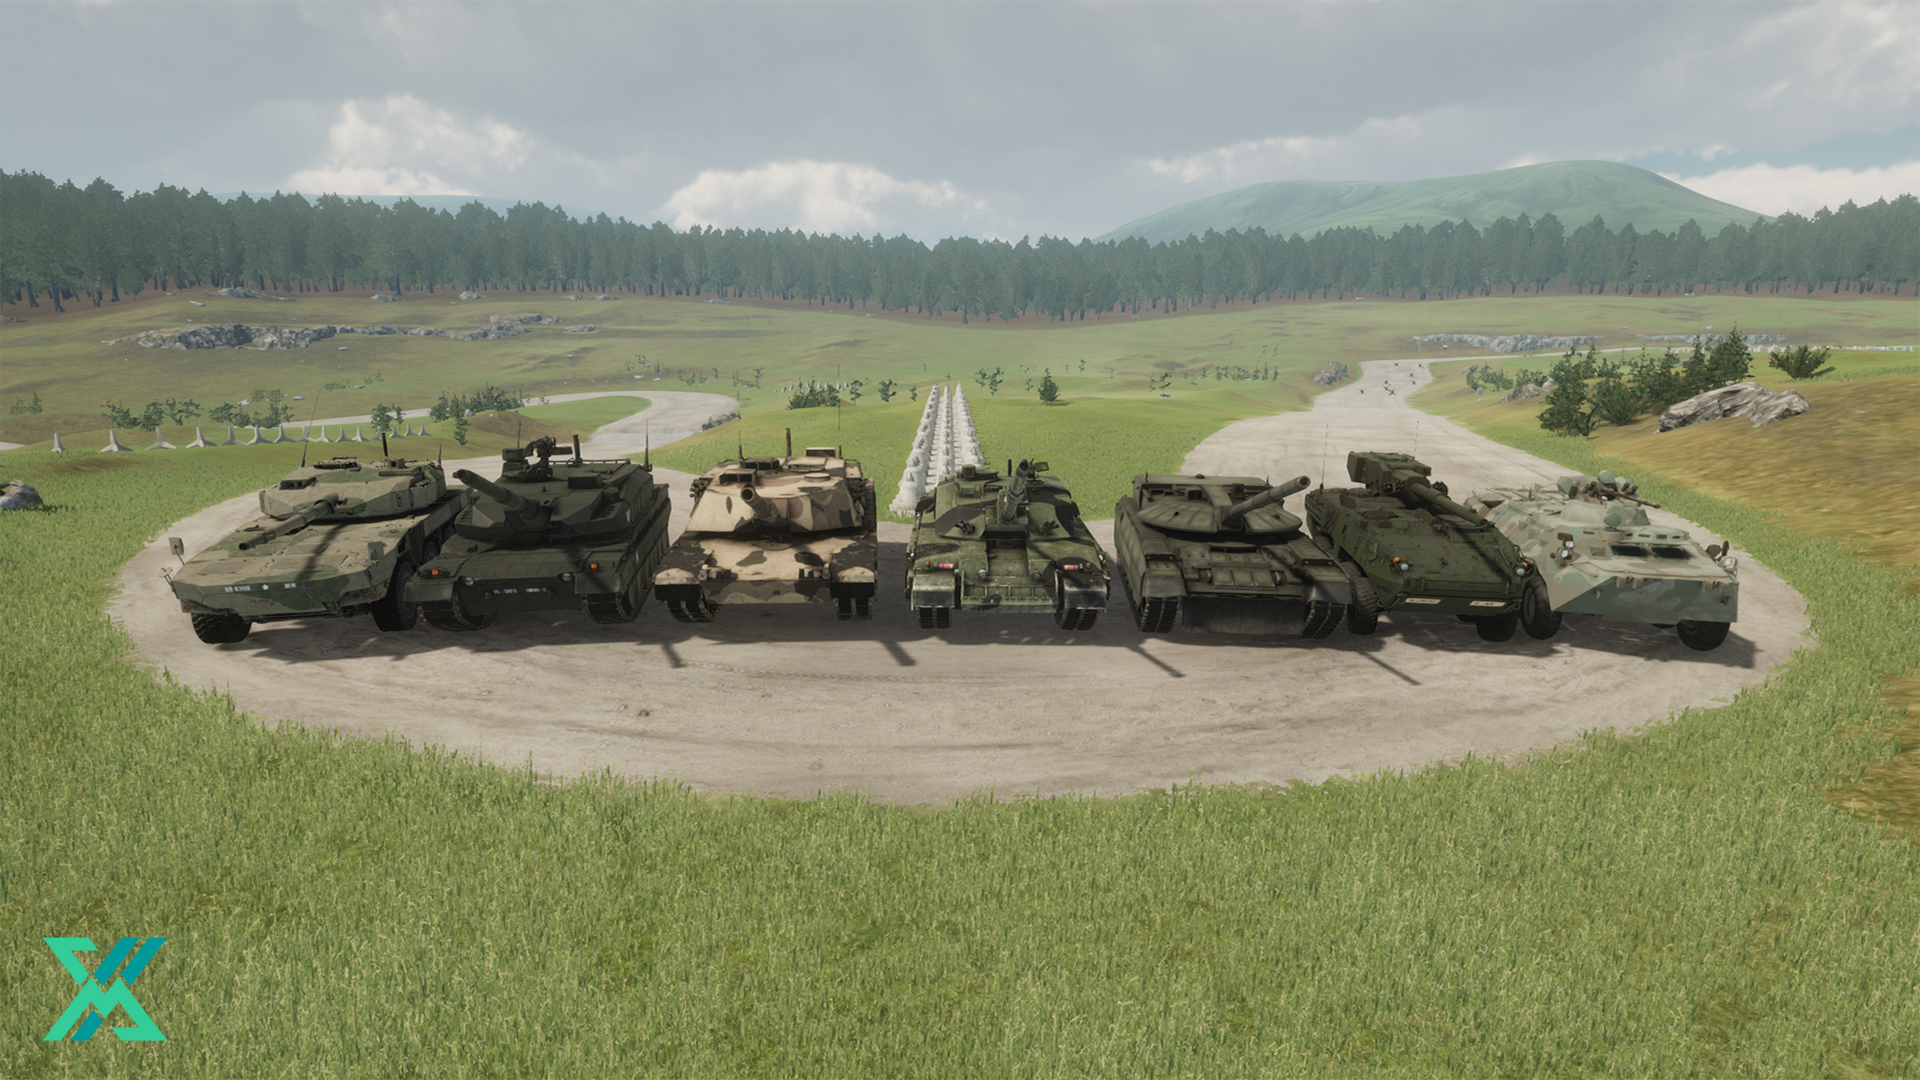 eXpanSIM new armored vehicles